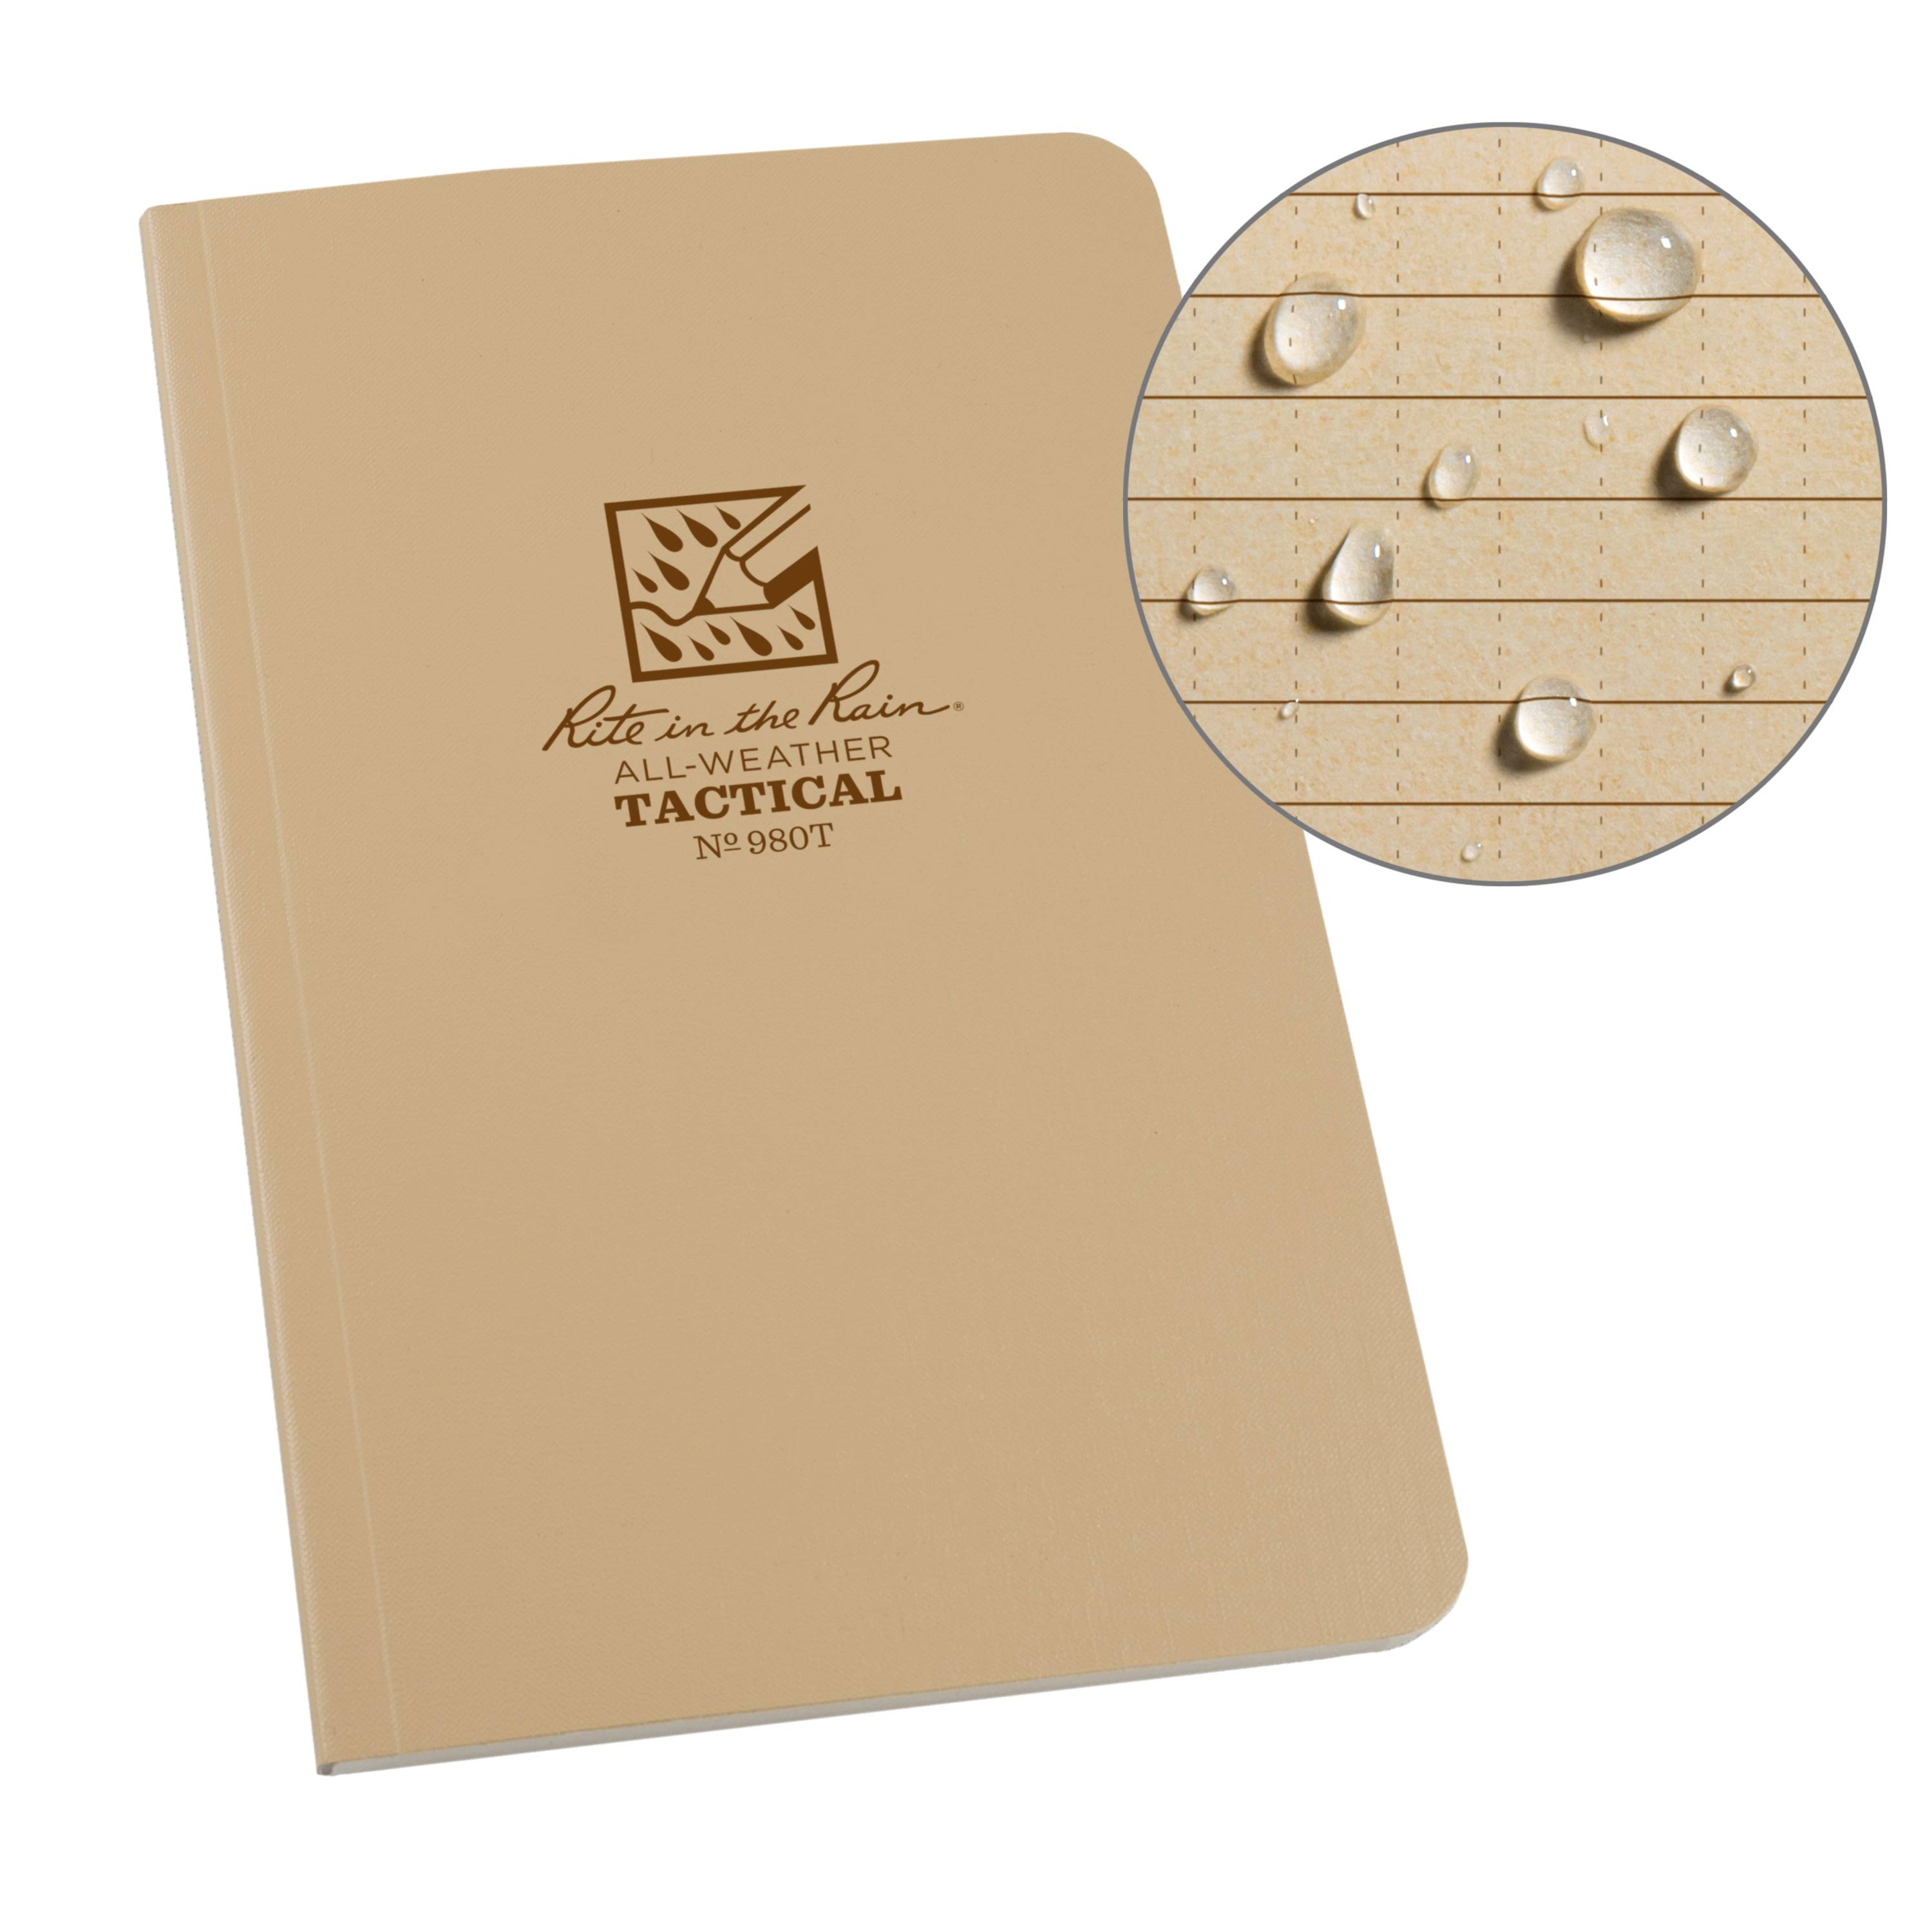 "Rite in the Rain All-Weather Tactical Field Notebook - 4 5/8"" x 7"""